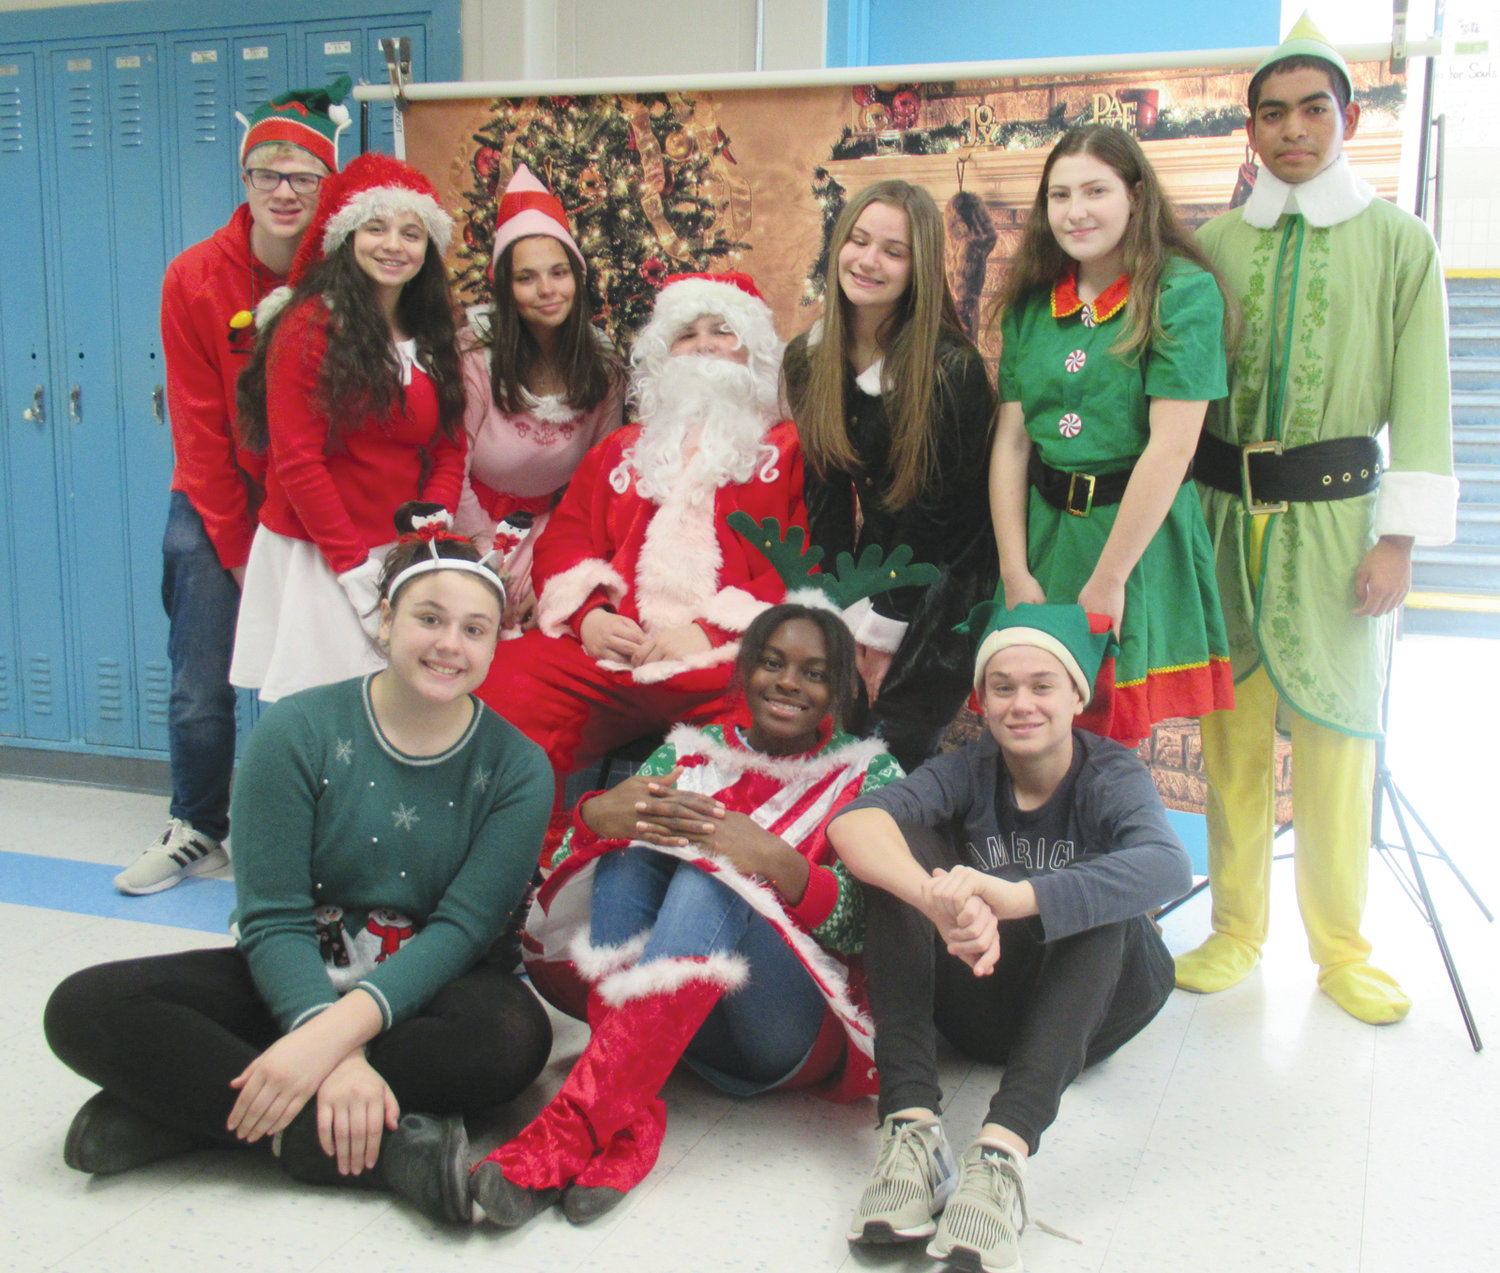 FANTASTIC FROSH: Members of the Johnston High School class of 2023 were all decked out in holiday garb to welcome Tyler Tomlin as Santa Claus. His helpers are, in front from left, Talia LaFlamme, Josephine Olagundoye and Jacob Muller; and top from left, Jackson Troxell, Hannah Calabro, Michelina King, Gianna Brodeur, Emily Feinstein and Joshua Galeas.